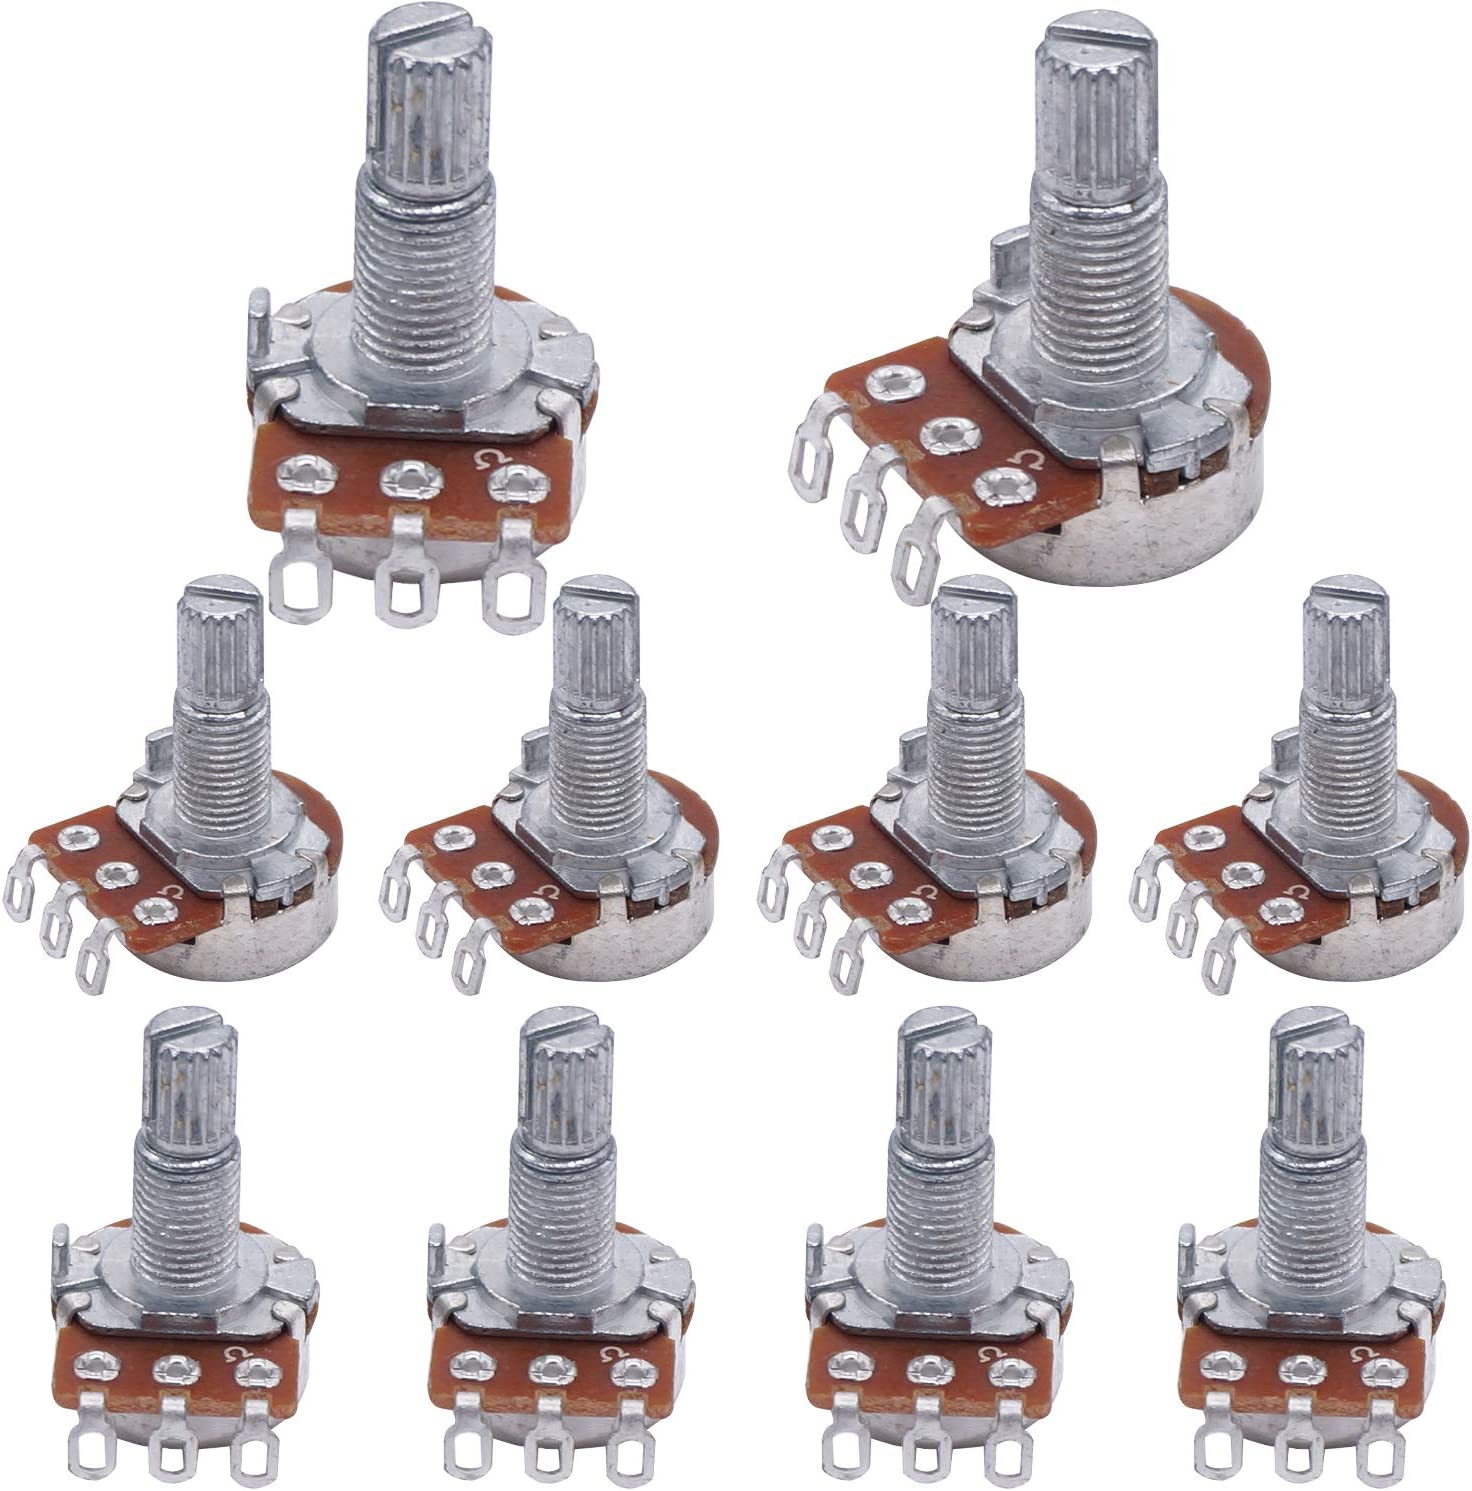 TWTADE//10Pcs A250K ohm Pots Guitar Taper Audio Potentiometers 18mm Shaft,adjustable Volume for musiclily electric Guitar WH148-A250K